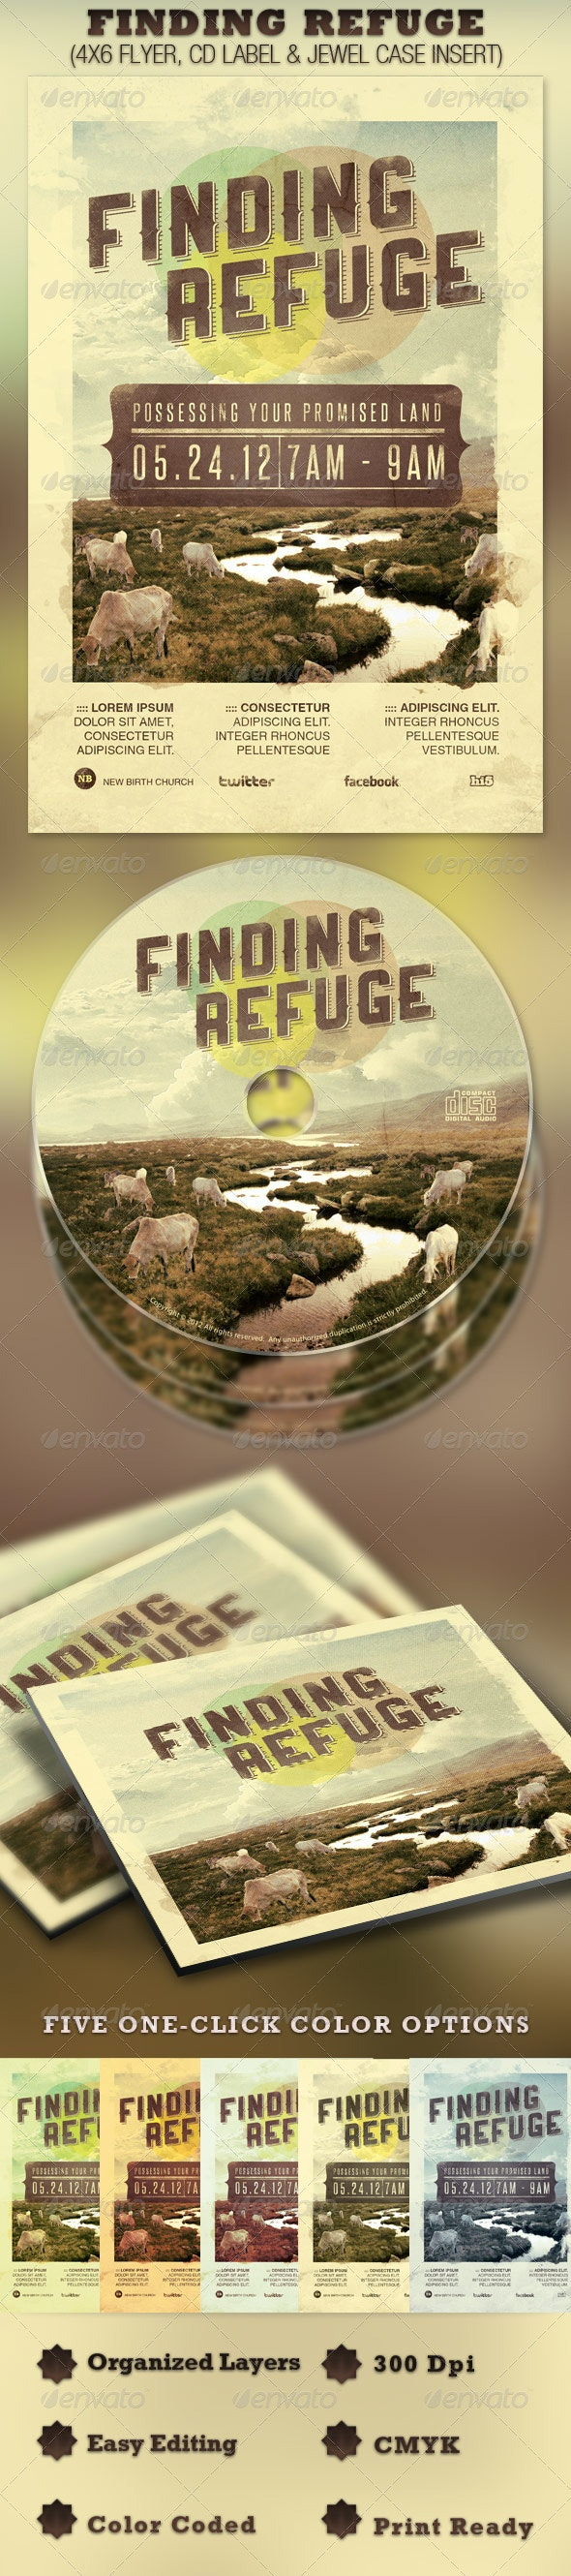 Finding Refuge Church Flyer and CD Template - Church Flyers